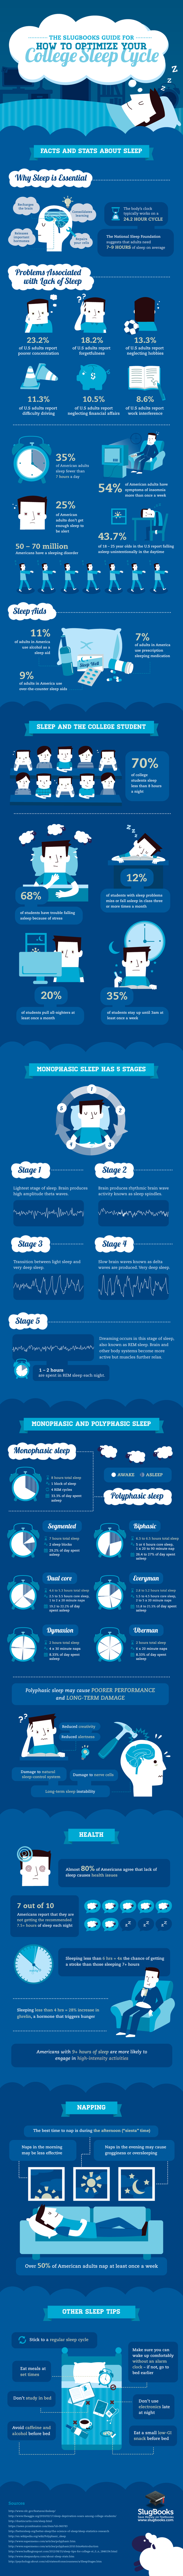 How to Optimize Your College Sleep Cycle